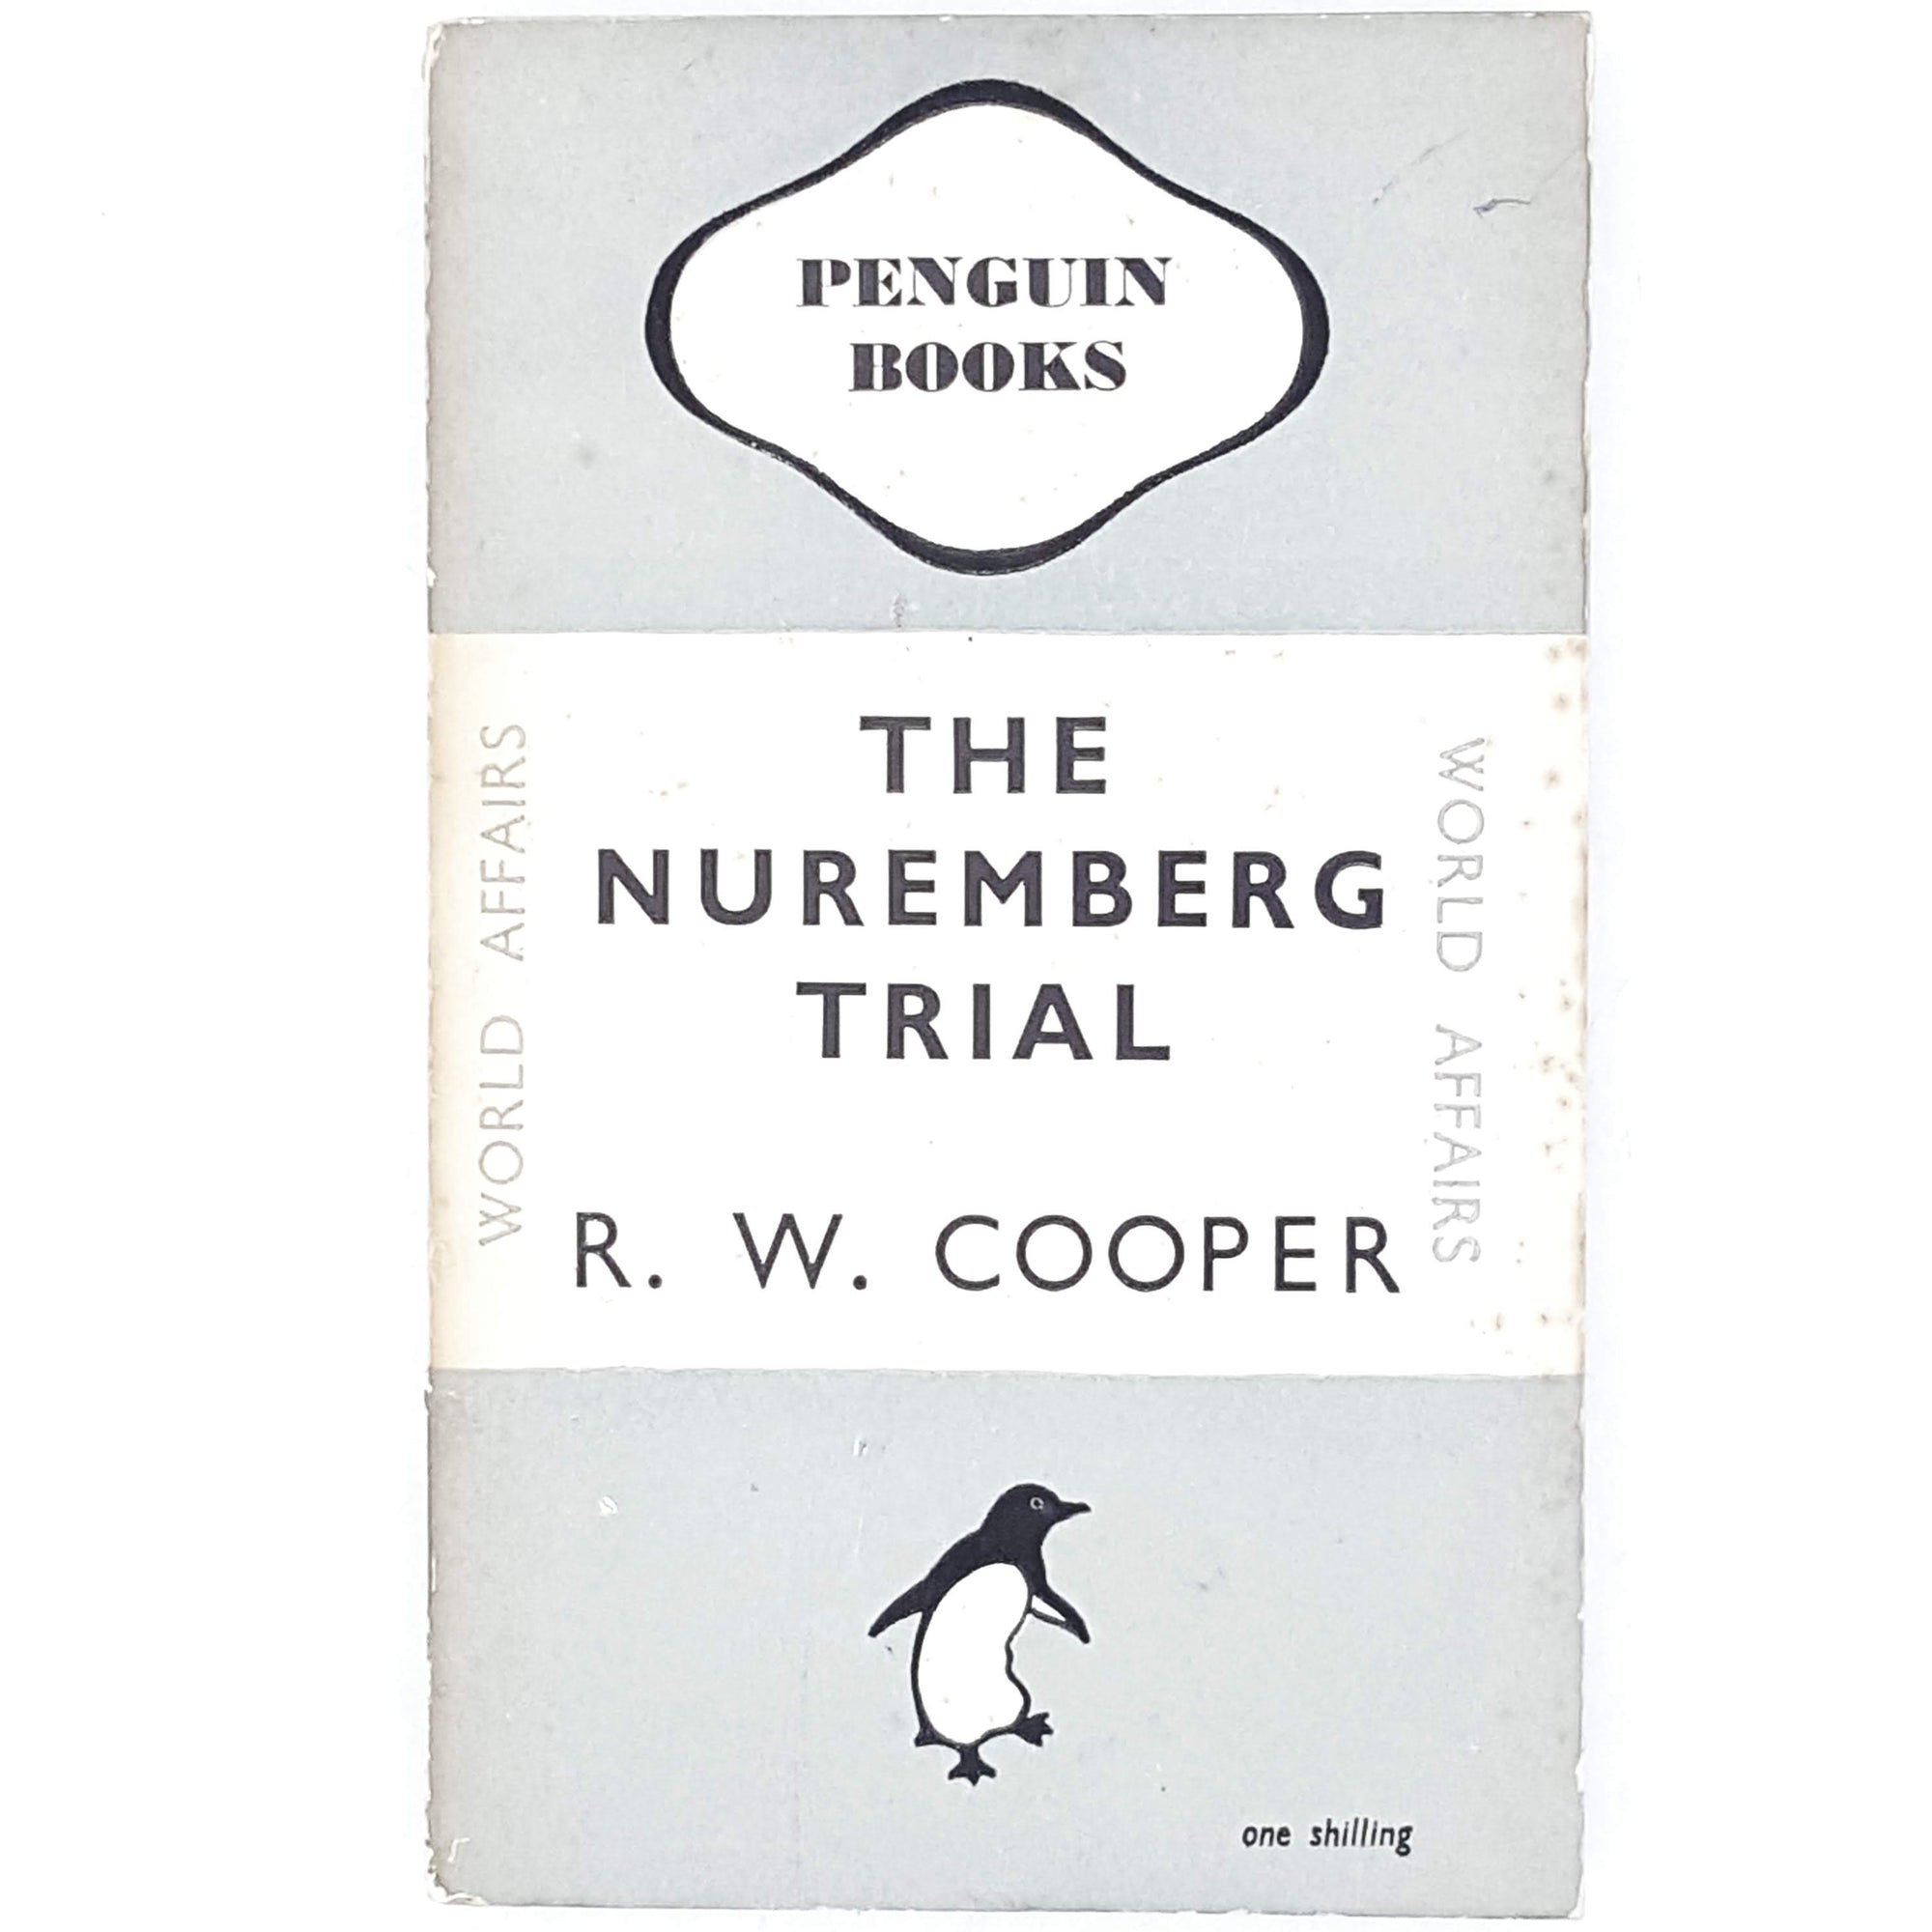 First Edition Penguin The Nuremberg Trial by R. W. Cooper 1947